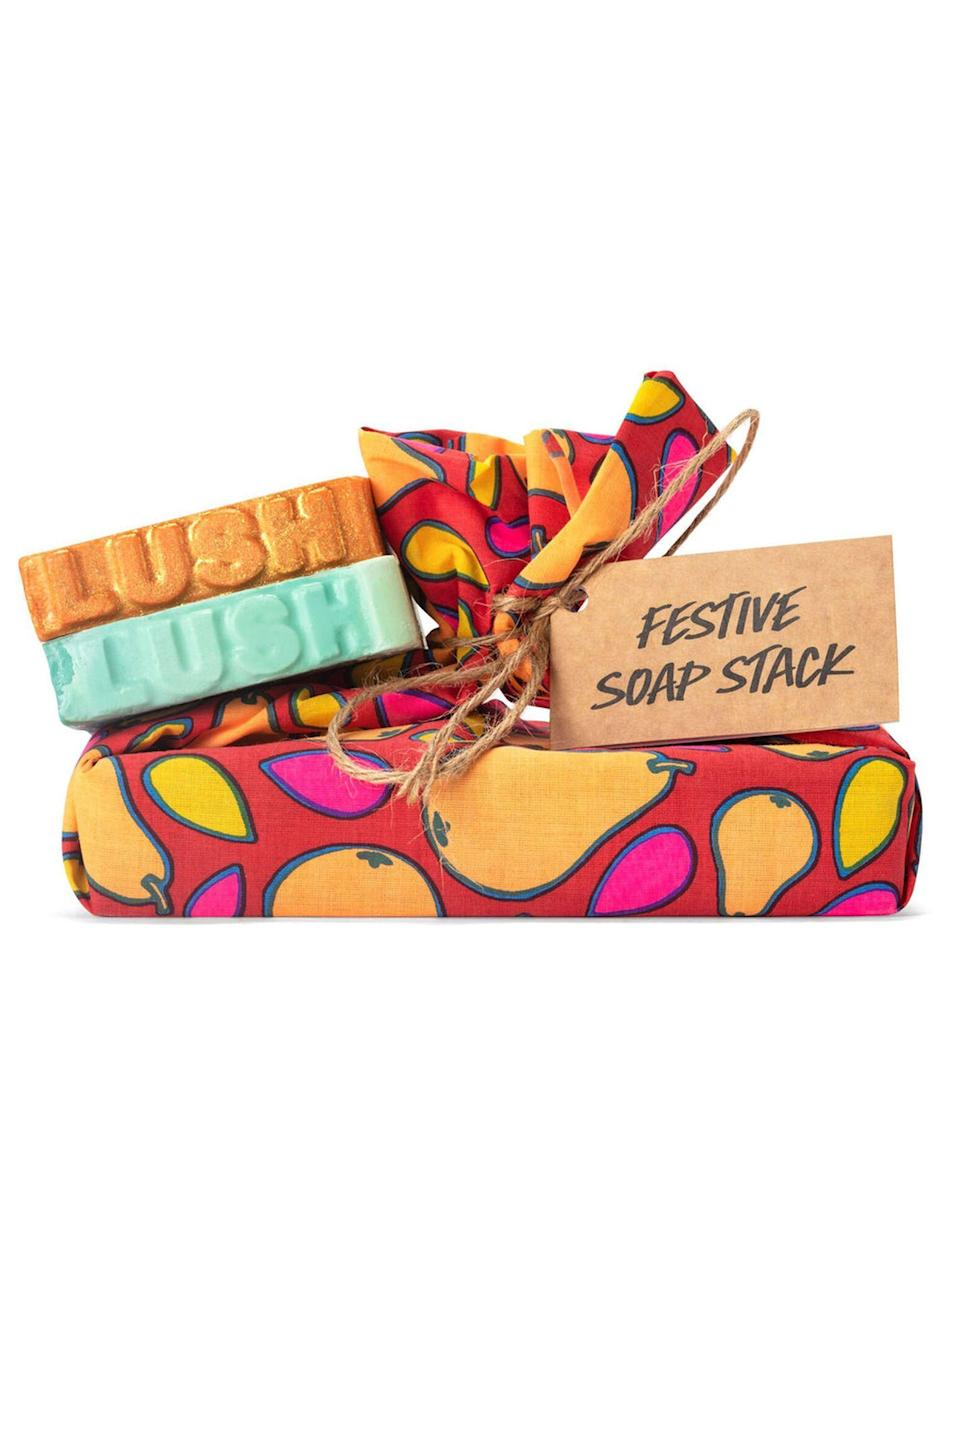 """<p><strong>Lush</strong></p><p>lushusa.com</p><p><strong>$20.95</strong></p><p><a href=""""https://www.lushusa.com/gifts/all-gift-sets/festive-soap-stack/9999960378.html"""" rel=""""nofollow noopener"""" target=""""_blank"""" data-ylk=""""slk:Shop Now"""" class=""""link rapid-noclick-resp"""">Shop Now</a></p><p>One thing your loved one most certainly needs and will use during a pandemic? Soap. These festive sets from Lush come tied together with a cotton wrap that can double as a hand towel. Plus, if you can't pick it up in person, Lush <a href=""""https://www.lushusa.com/stories/article_10-things-lush-packaging.html"""" rel=""""nofollow noopener"""" target=""""_blank"""" data-ylk=""""slk:ships items"""" class=""""link rapid-noclick-resp"""">ships items</a> in recyclable and compostable packaging.</p>"""